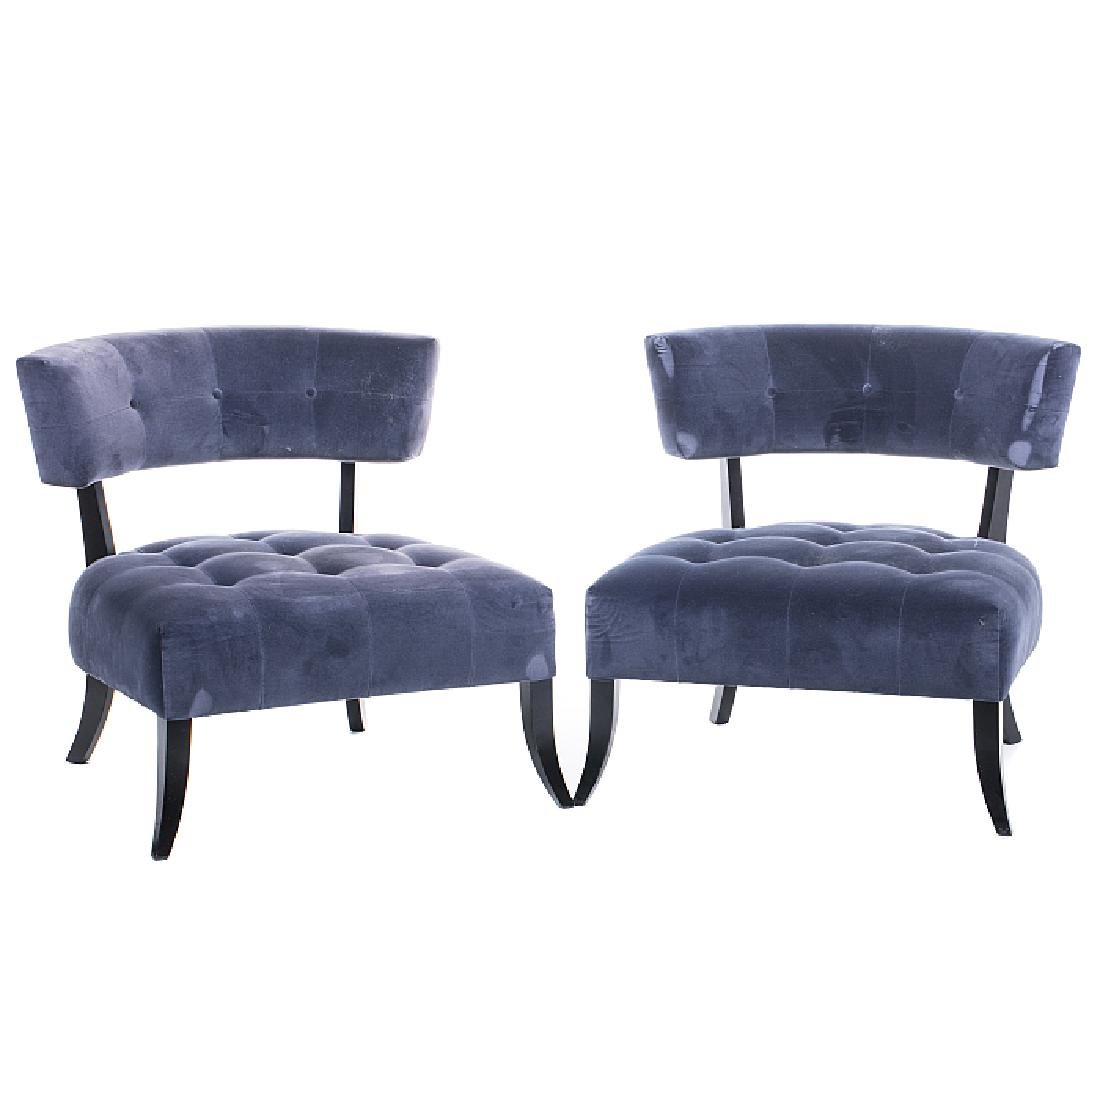 Style of WILLIAM HAINES (1900-1973) - Pair of chairs